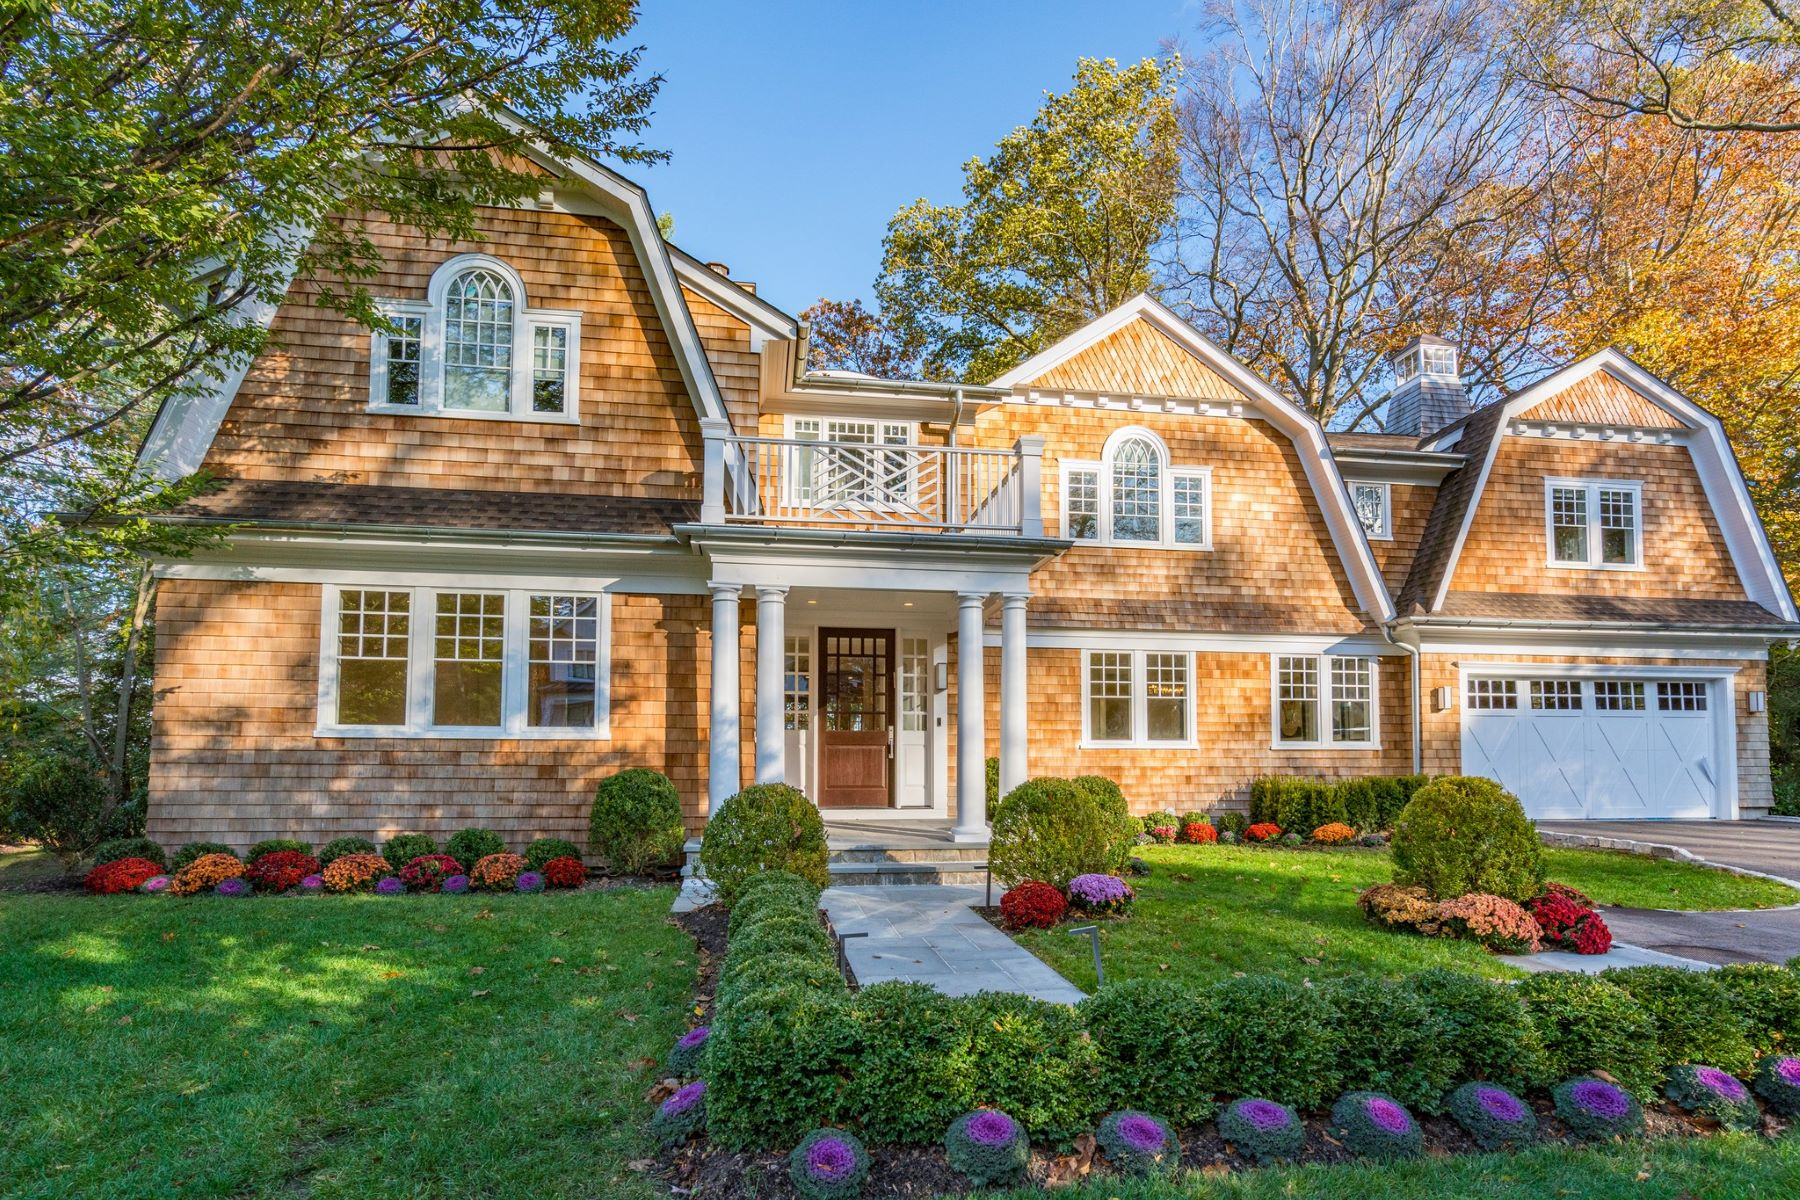 Single Family Homes for Sale at East Hills 115 Sycamore Drive East Hills, New York 11576 United States